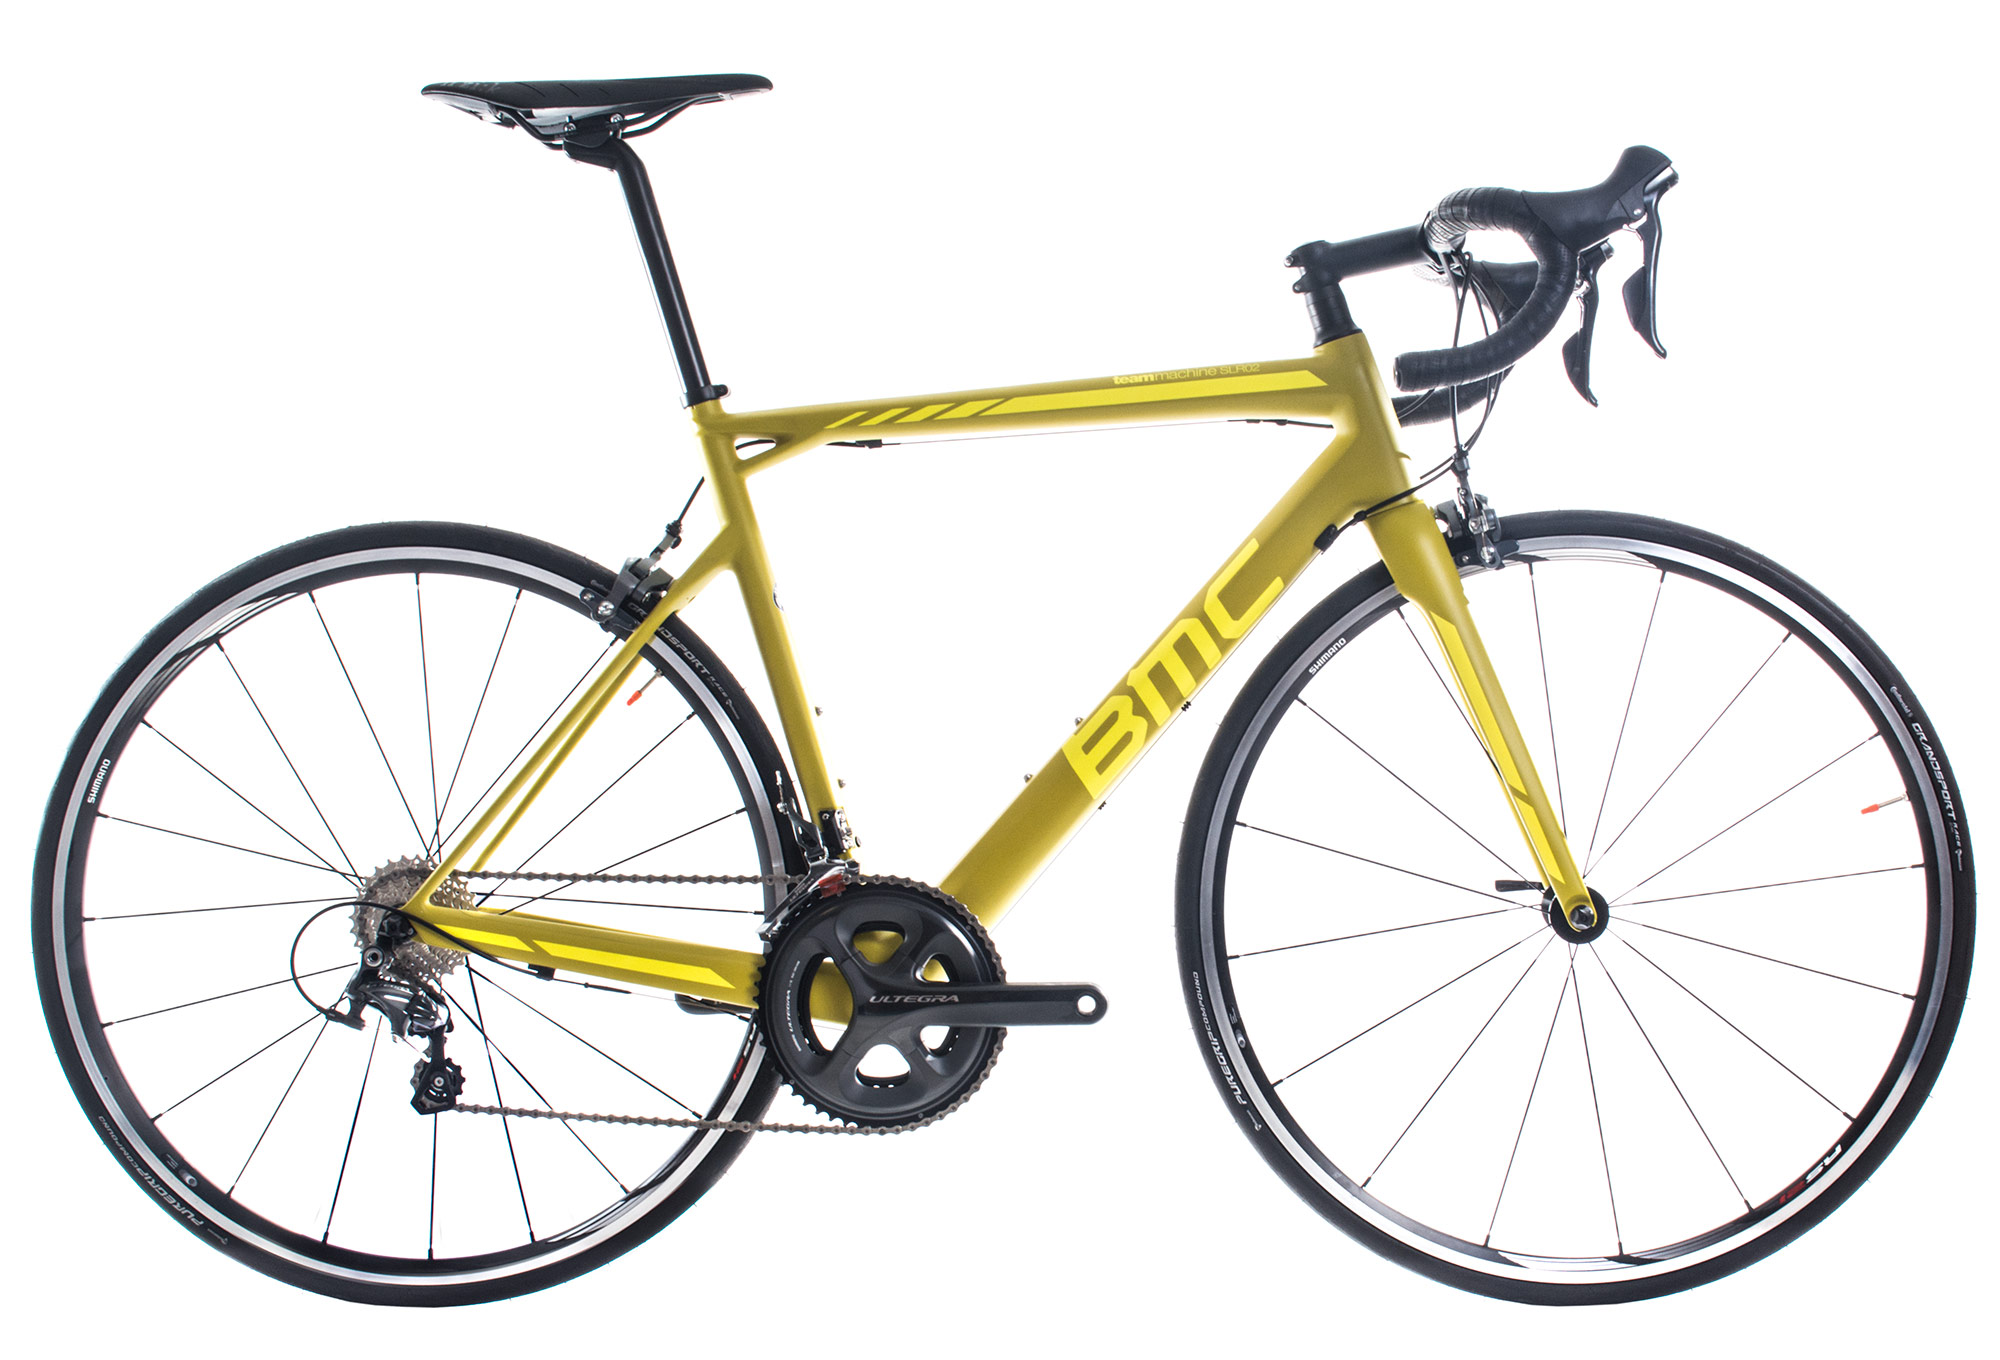 v lo de route bmc teammachine slr02 shimano ultegra 11v 2017 jaune. Black Bedroom Furniture Sets. Home Design Ideas